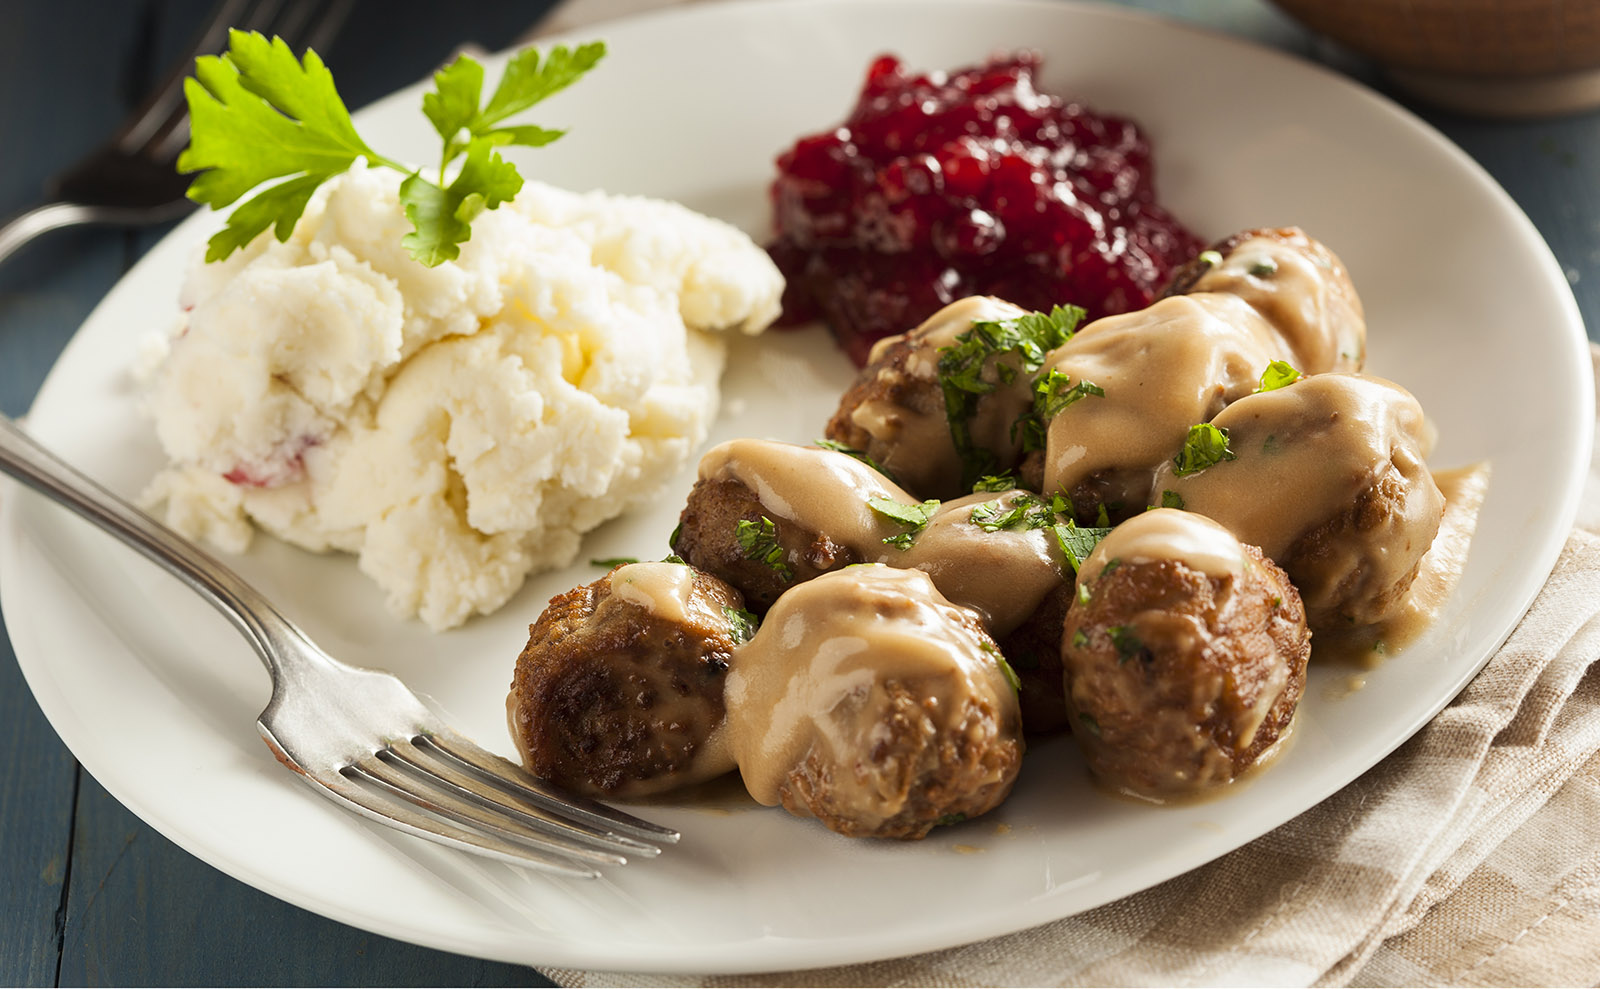 swedish meatballs in gravy with mashed potatoes and lingonberry jam